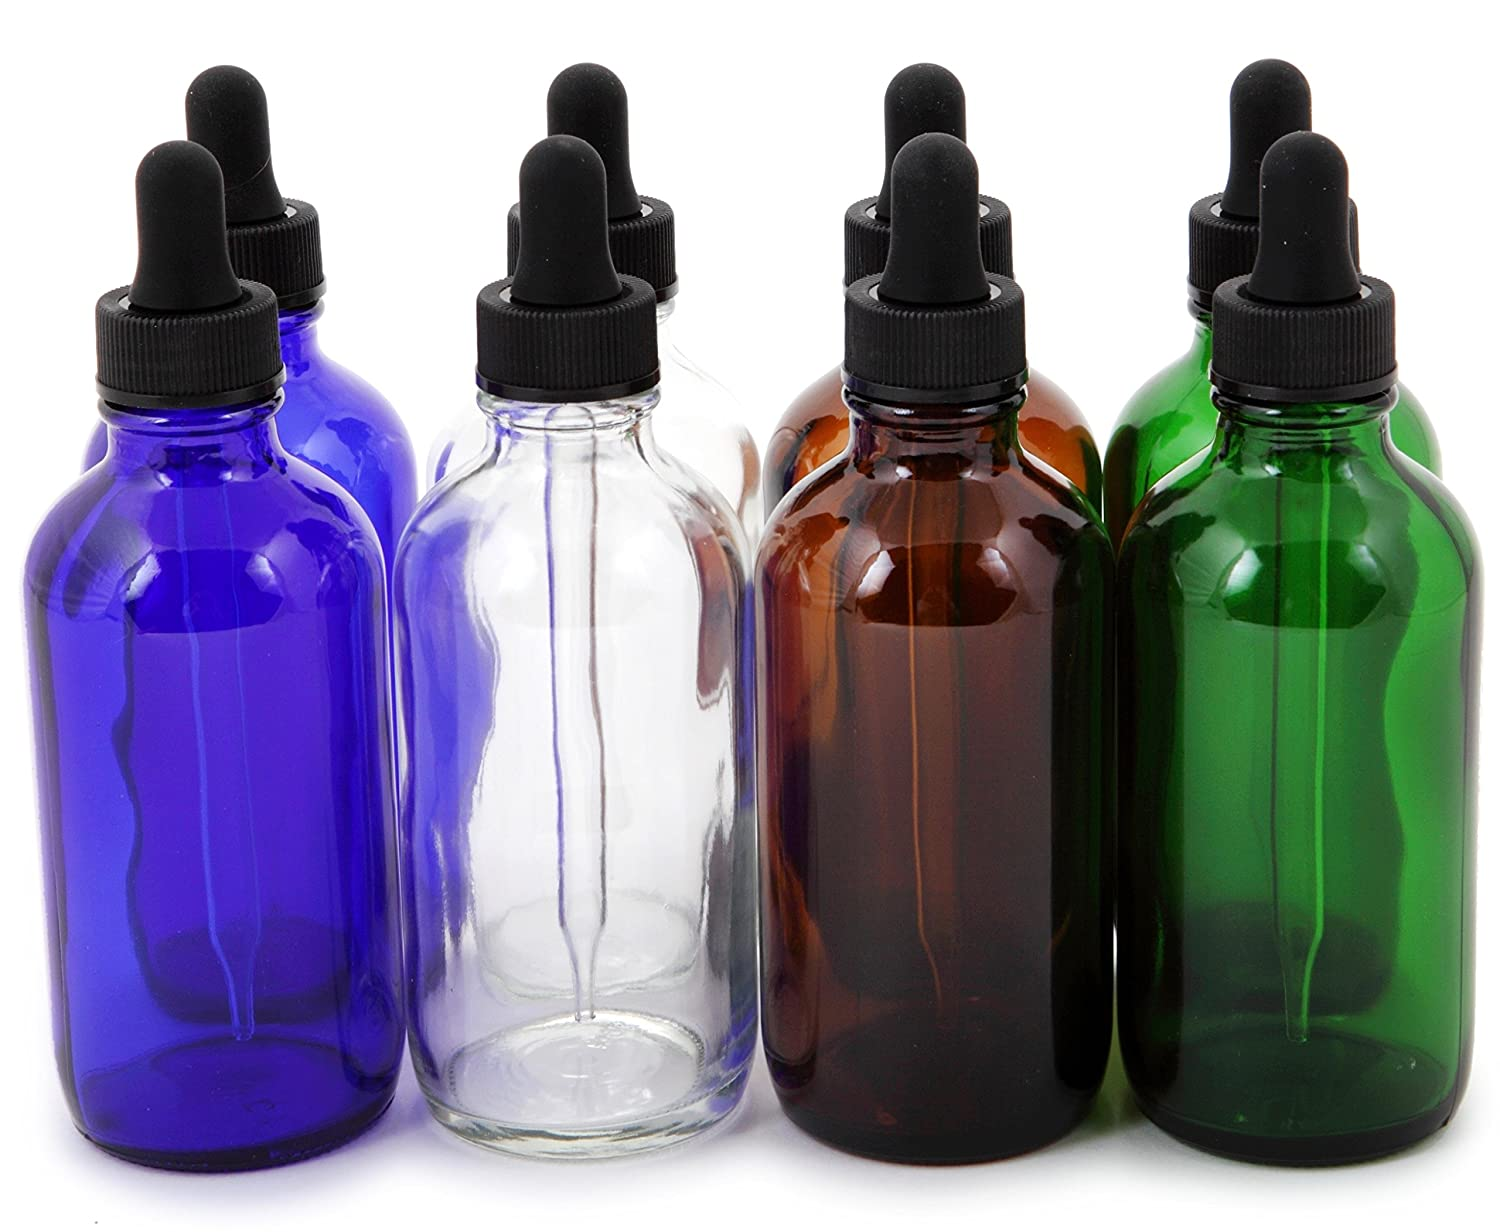 Vivaplex, 8, Assorted Colors, 4 oz Glass Bottles, with Glass Eye Droppers